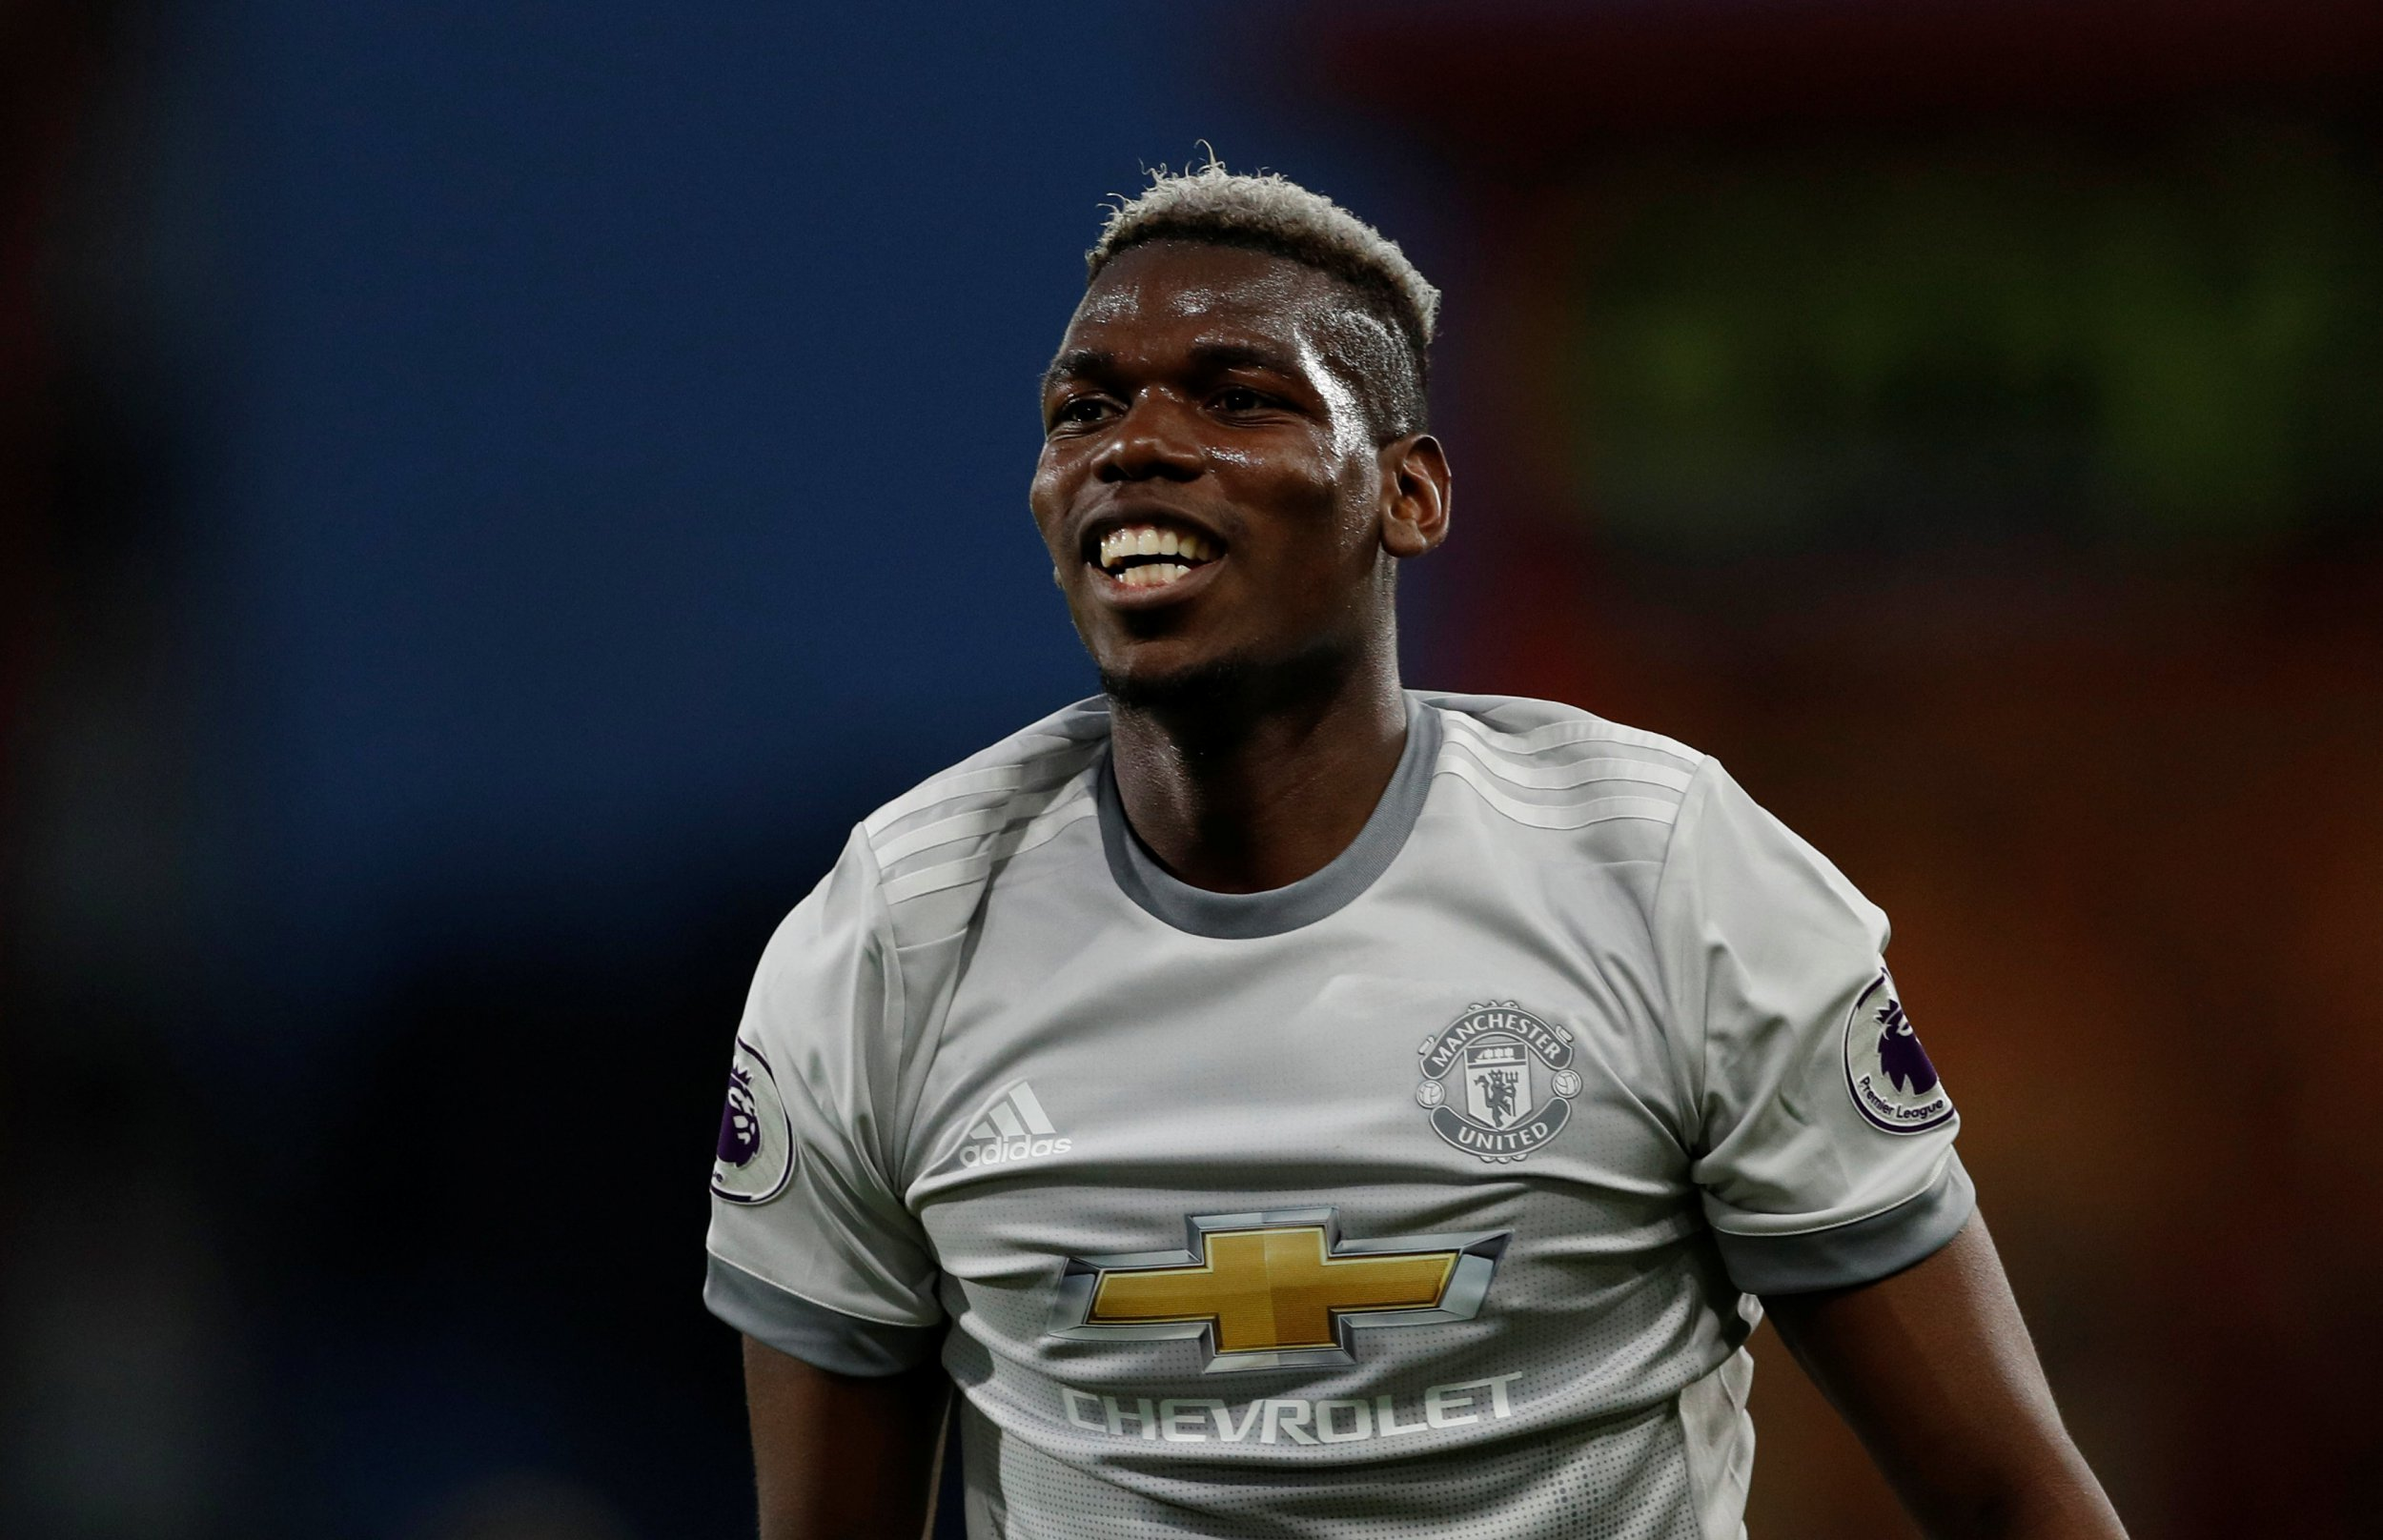 """Soccer Football - Premier League - AFC Bournemouth vs Manchester United - Vitality Stadium, Bournemouth, Britain - April 18, 2018 Manchester United's Paul Pogba reacts Action Images via Reuters/John Sibley EDITORIAL USE ONLY. No use with unauthorized audio, video, data, fixture lists, club/league logos or """"live"""" services. Online in-match use limited to 75 images, no video emulation. No use in betting, games or single club/league/player publications. Please contact your account representative for further details."""